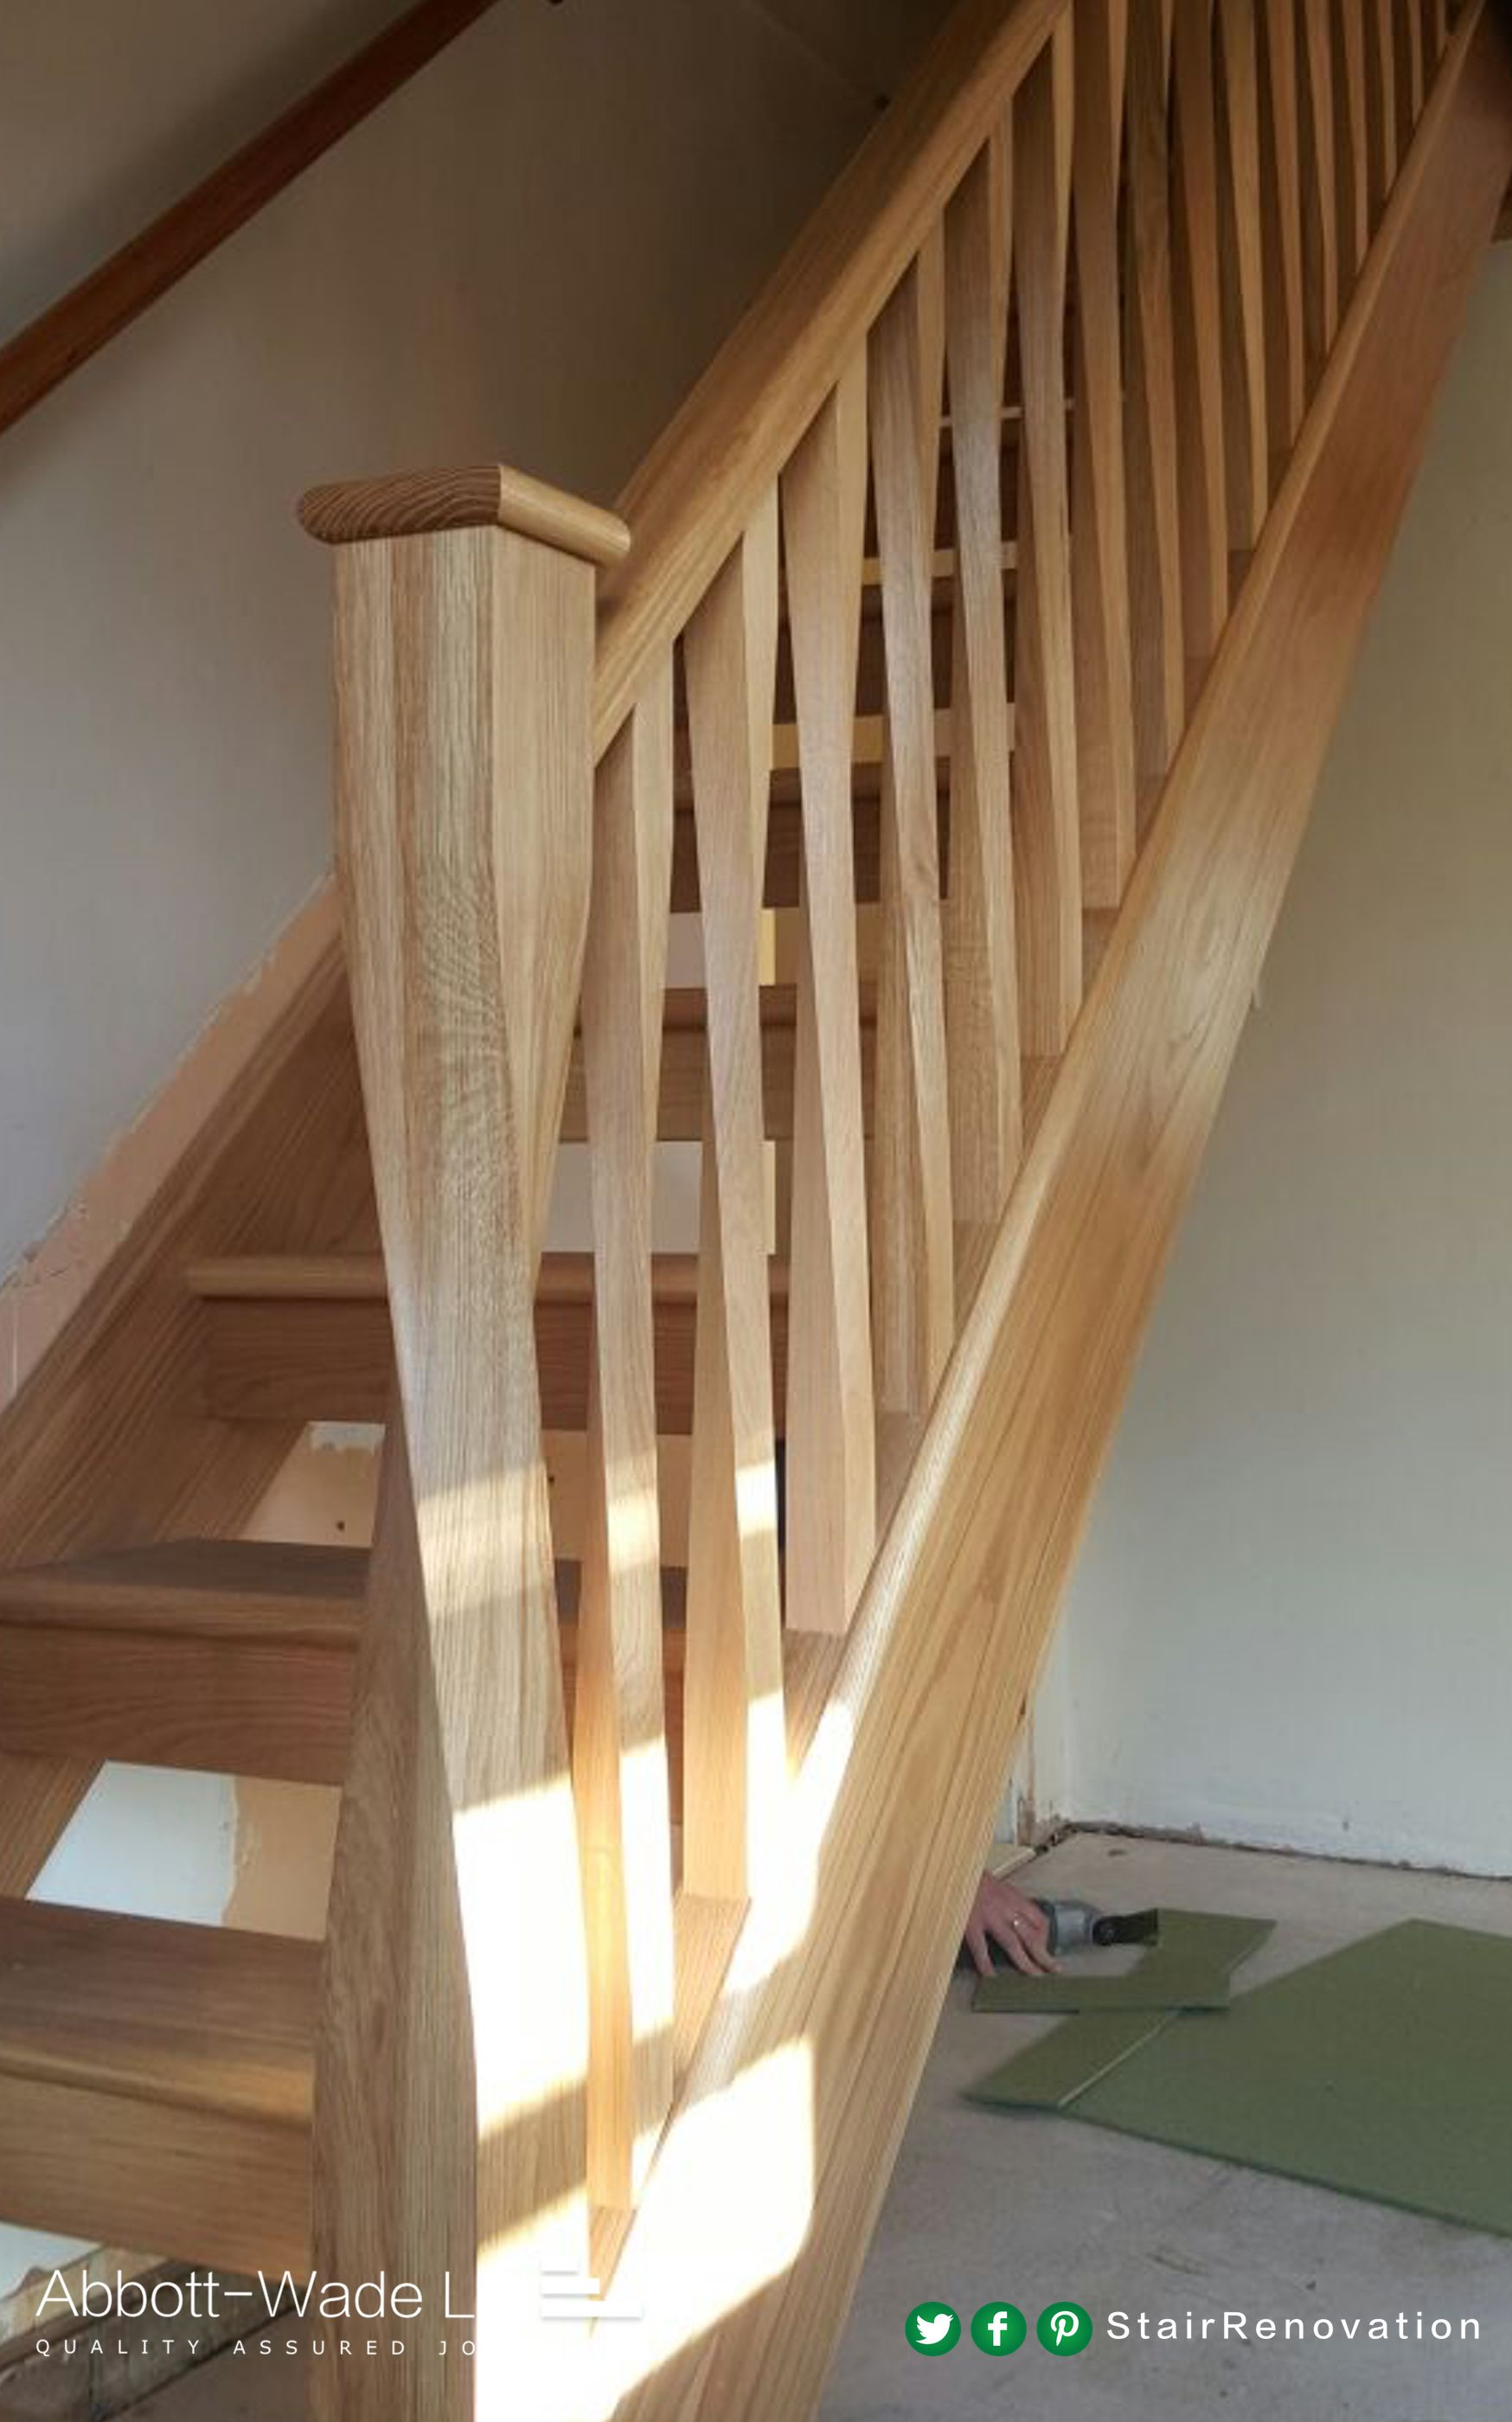 Best Abbott Wade S Twisted Oak Newel Spindles Stairs Design 640 x 480